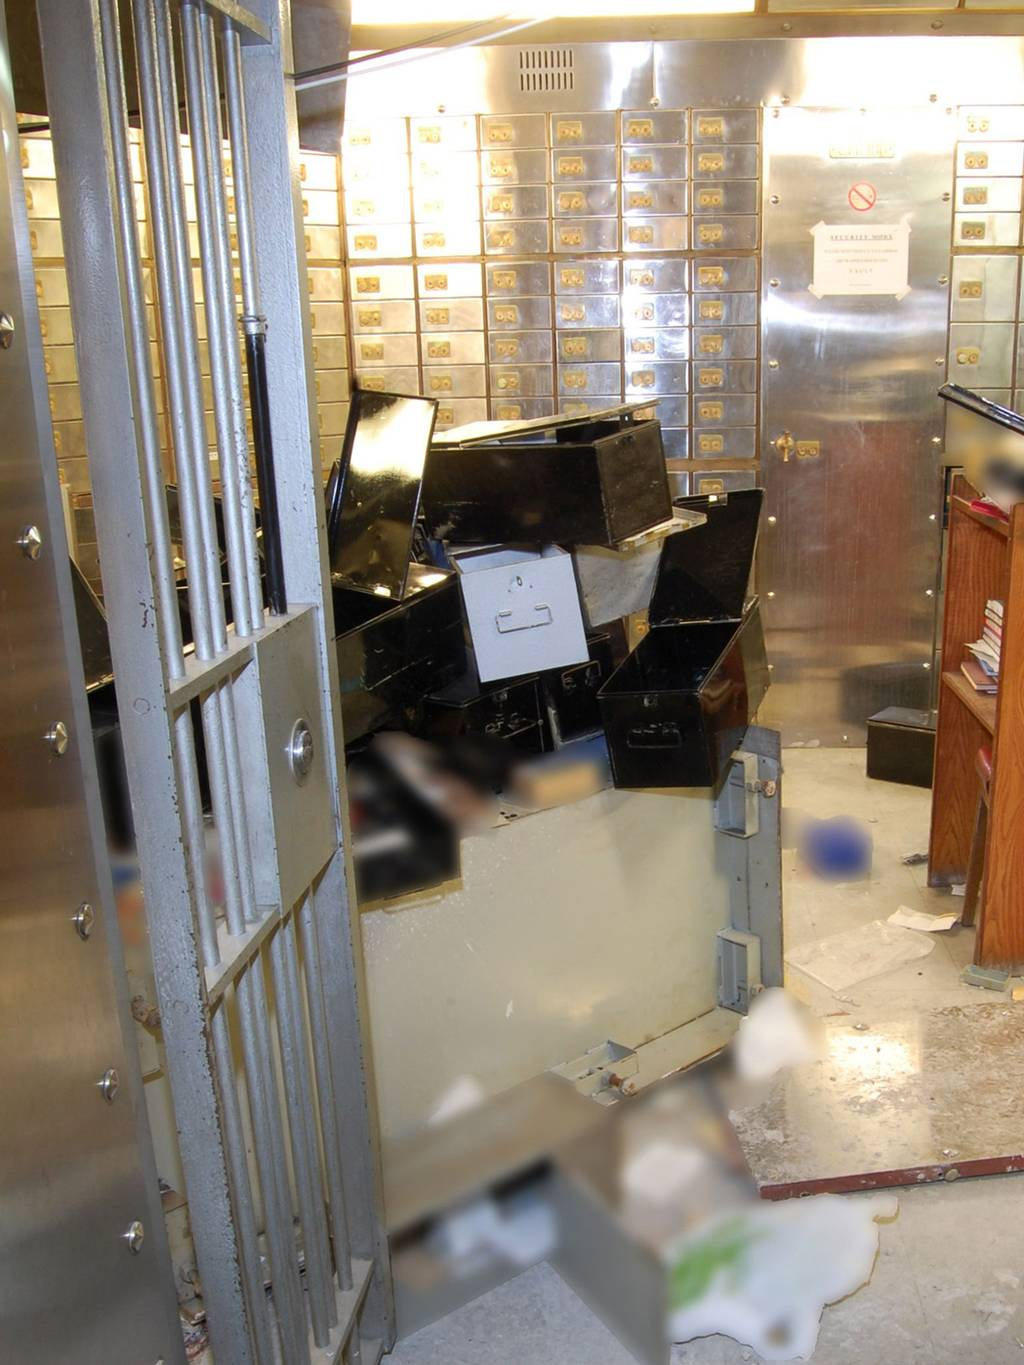 Robbers Pulled Off A Bank Heist So Extreme That It Should Be A Movie